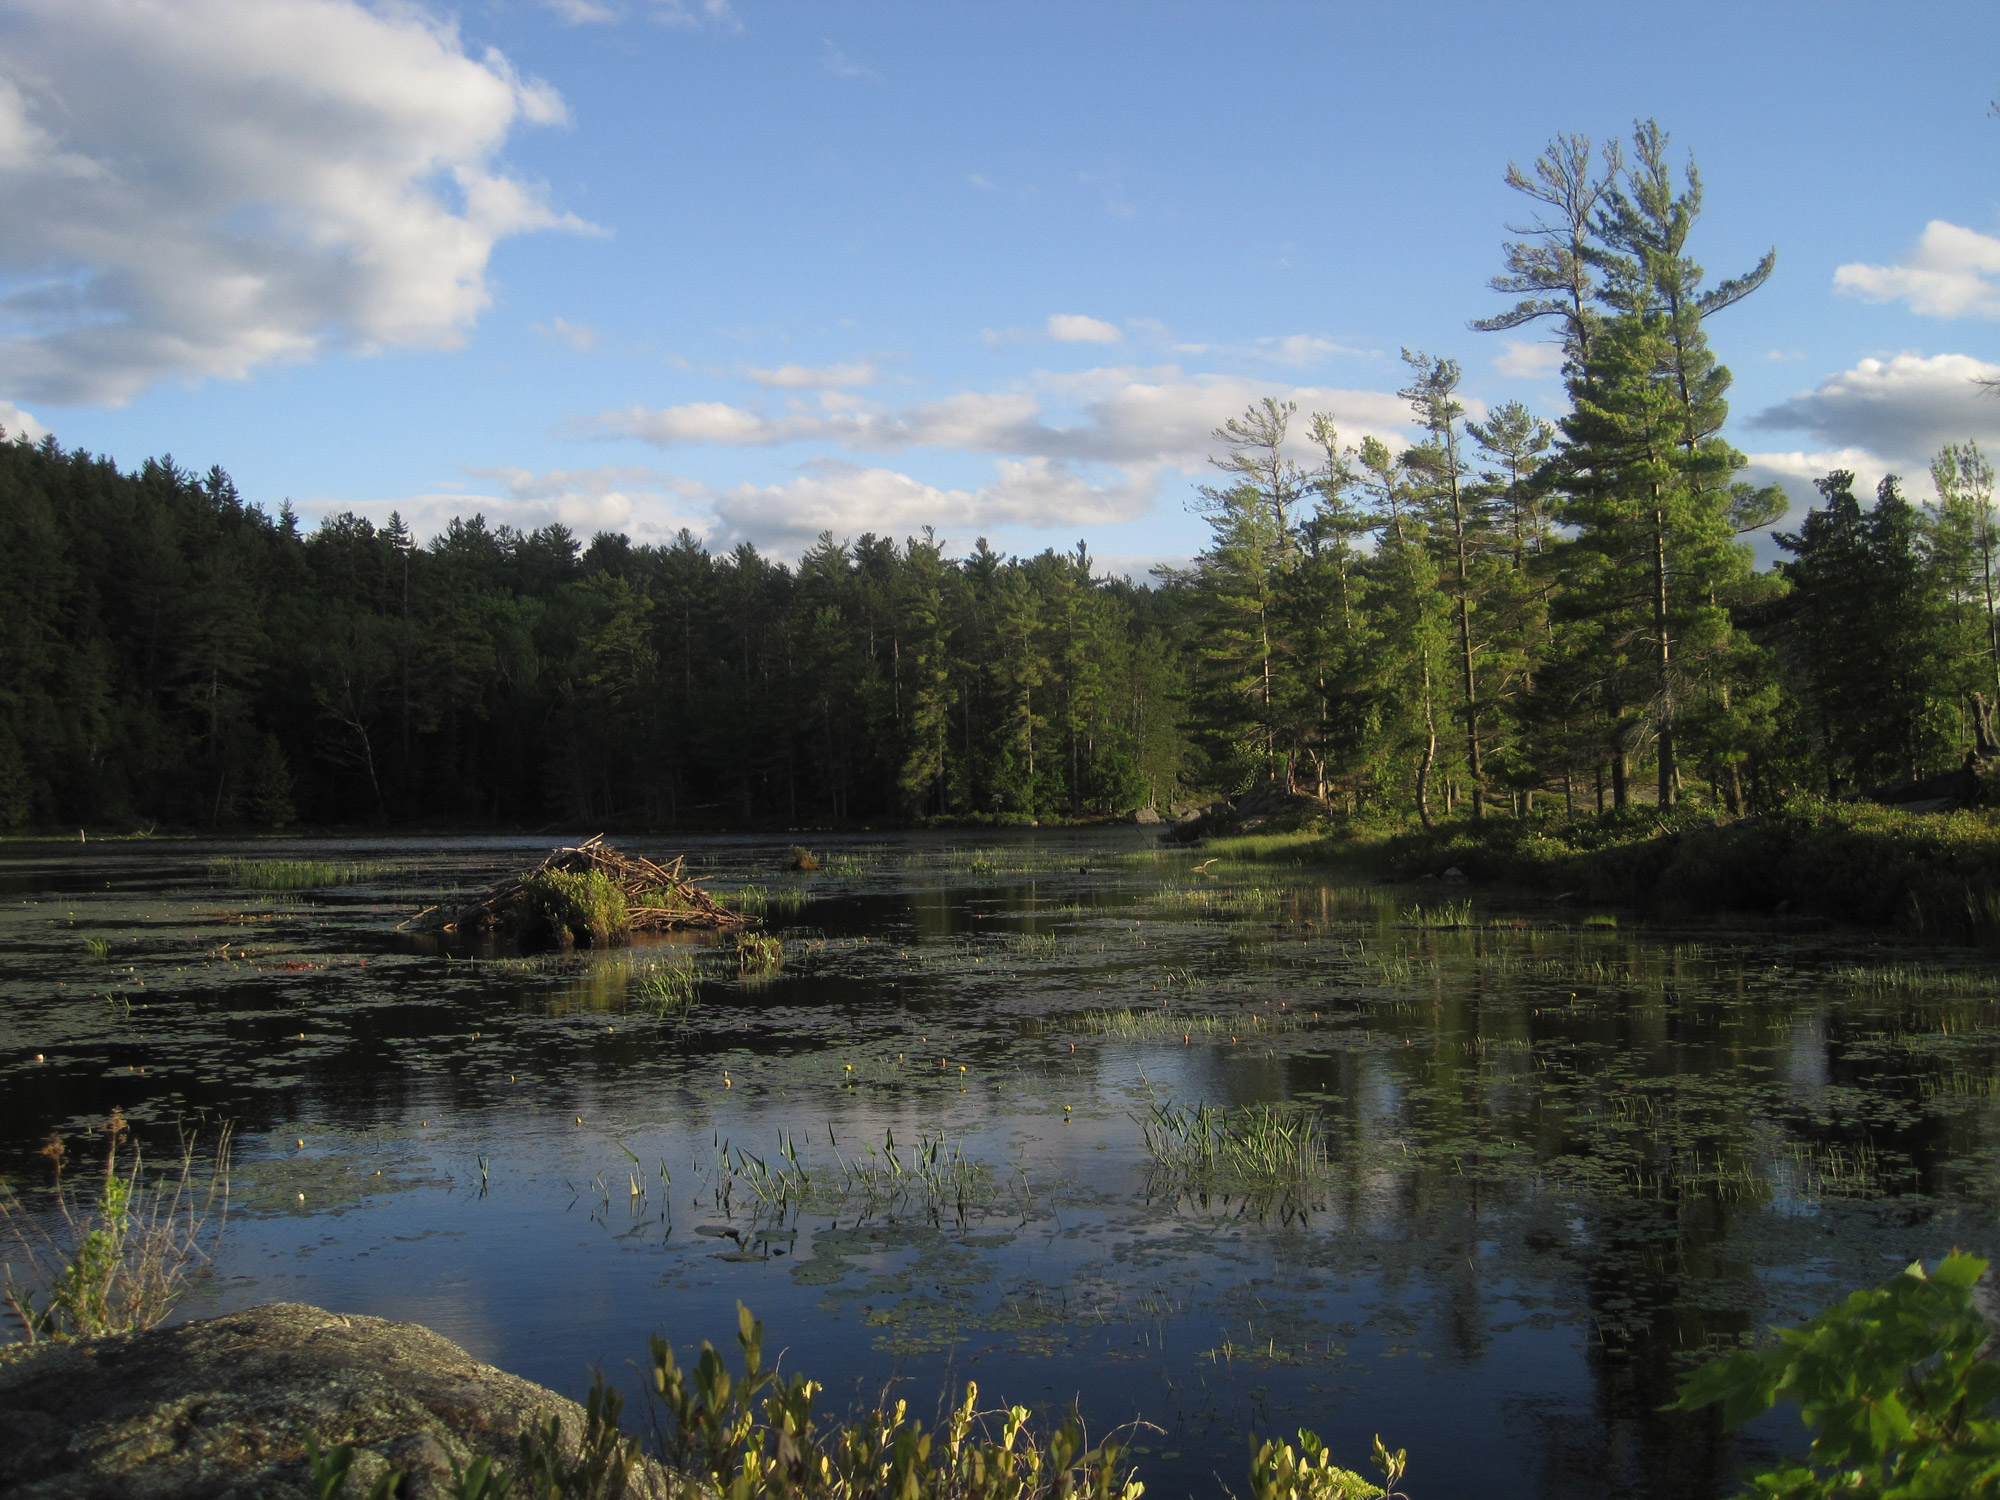 A wetland in the Western Adirondacks